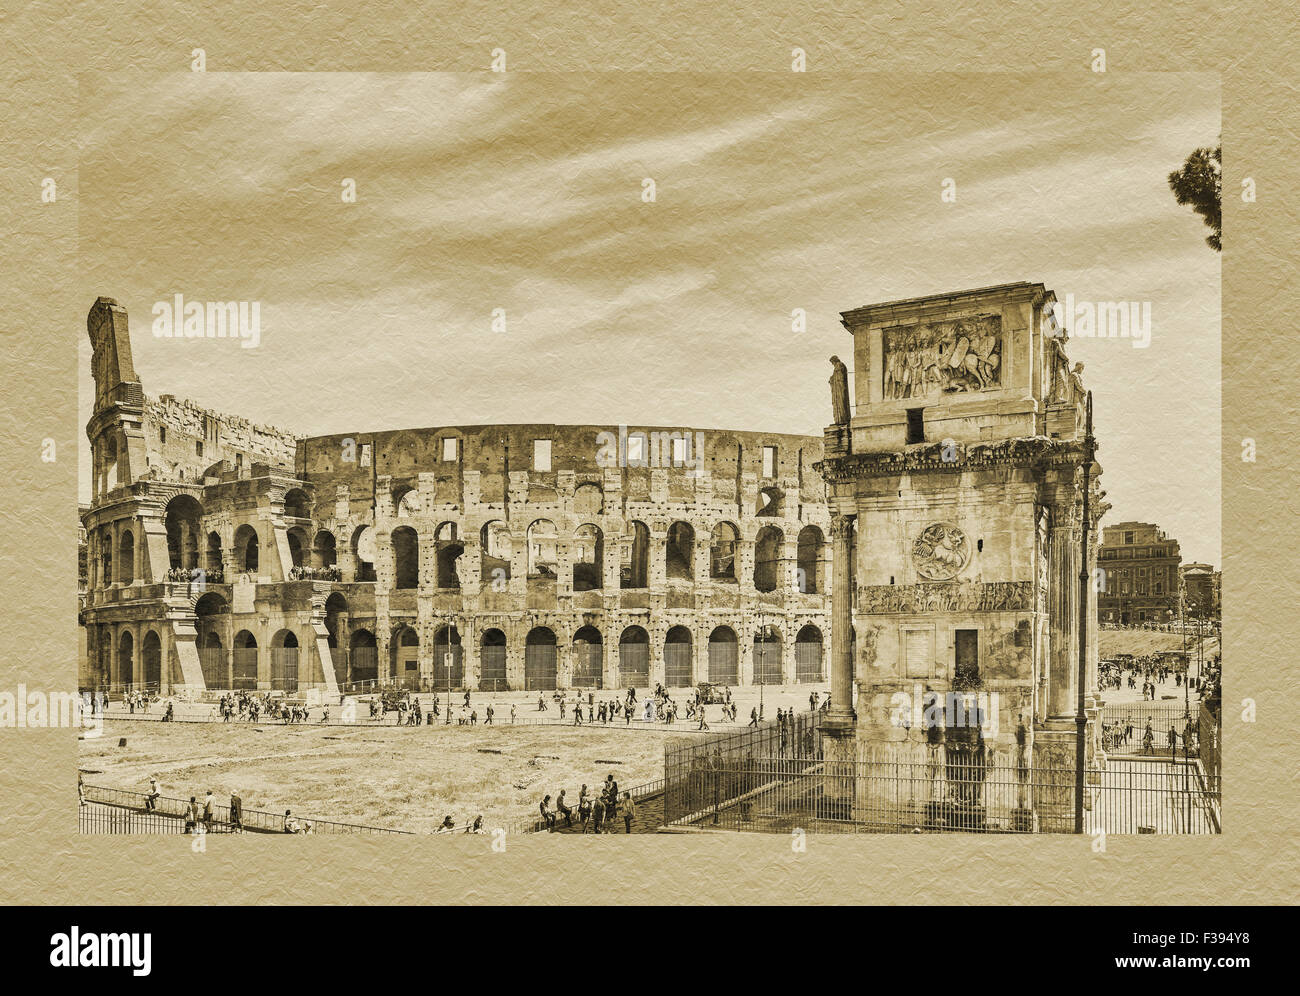 The Colosseum is the largest amphitheater. The Arch of Constantine is located in front of the Colosseum, Rome, Lazio, Stock Photo